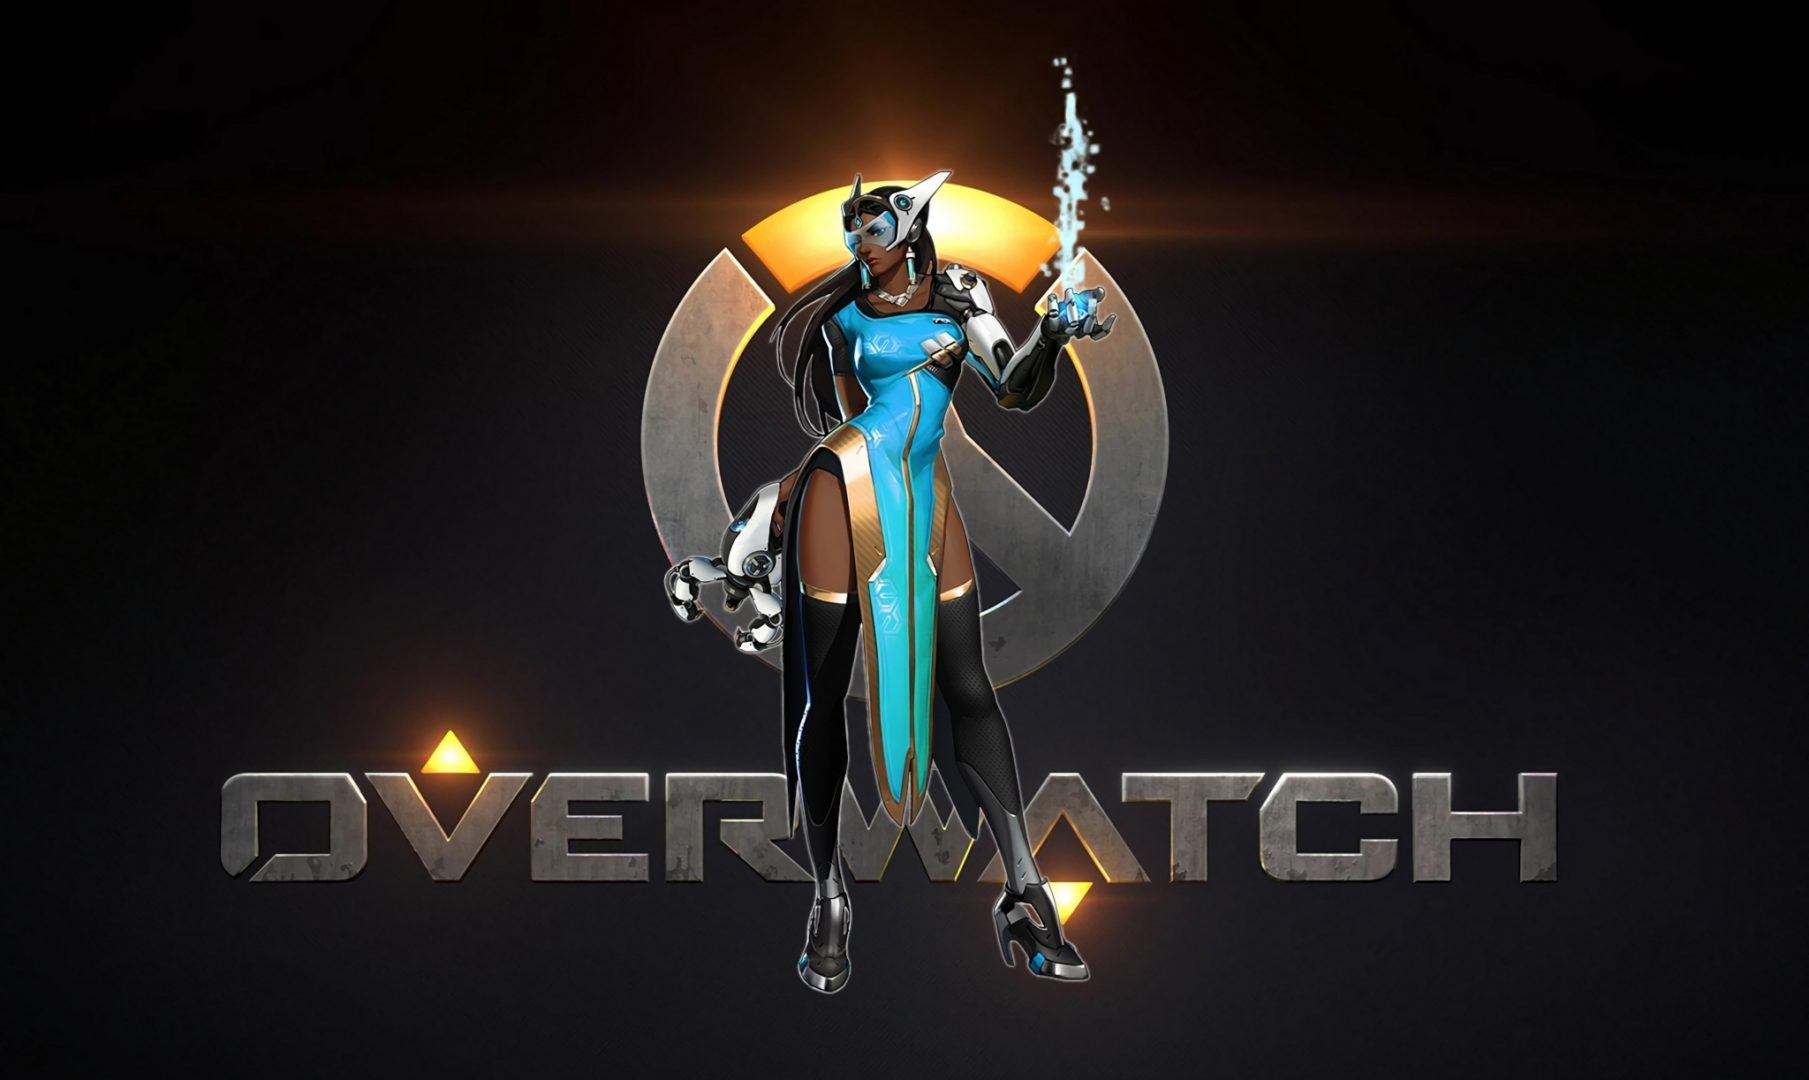 South Korean Overwatch Team Wins Without Symmetra